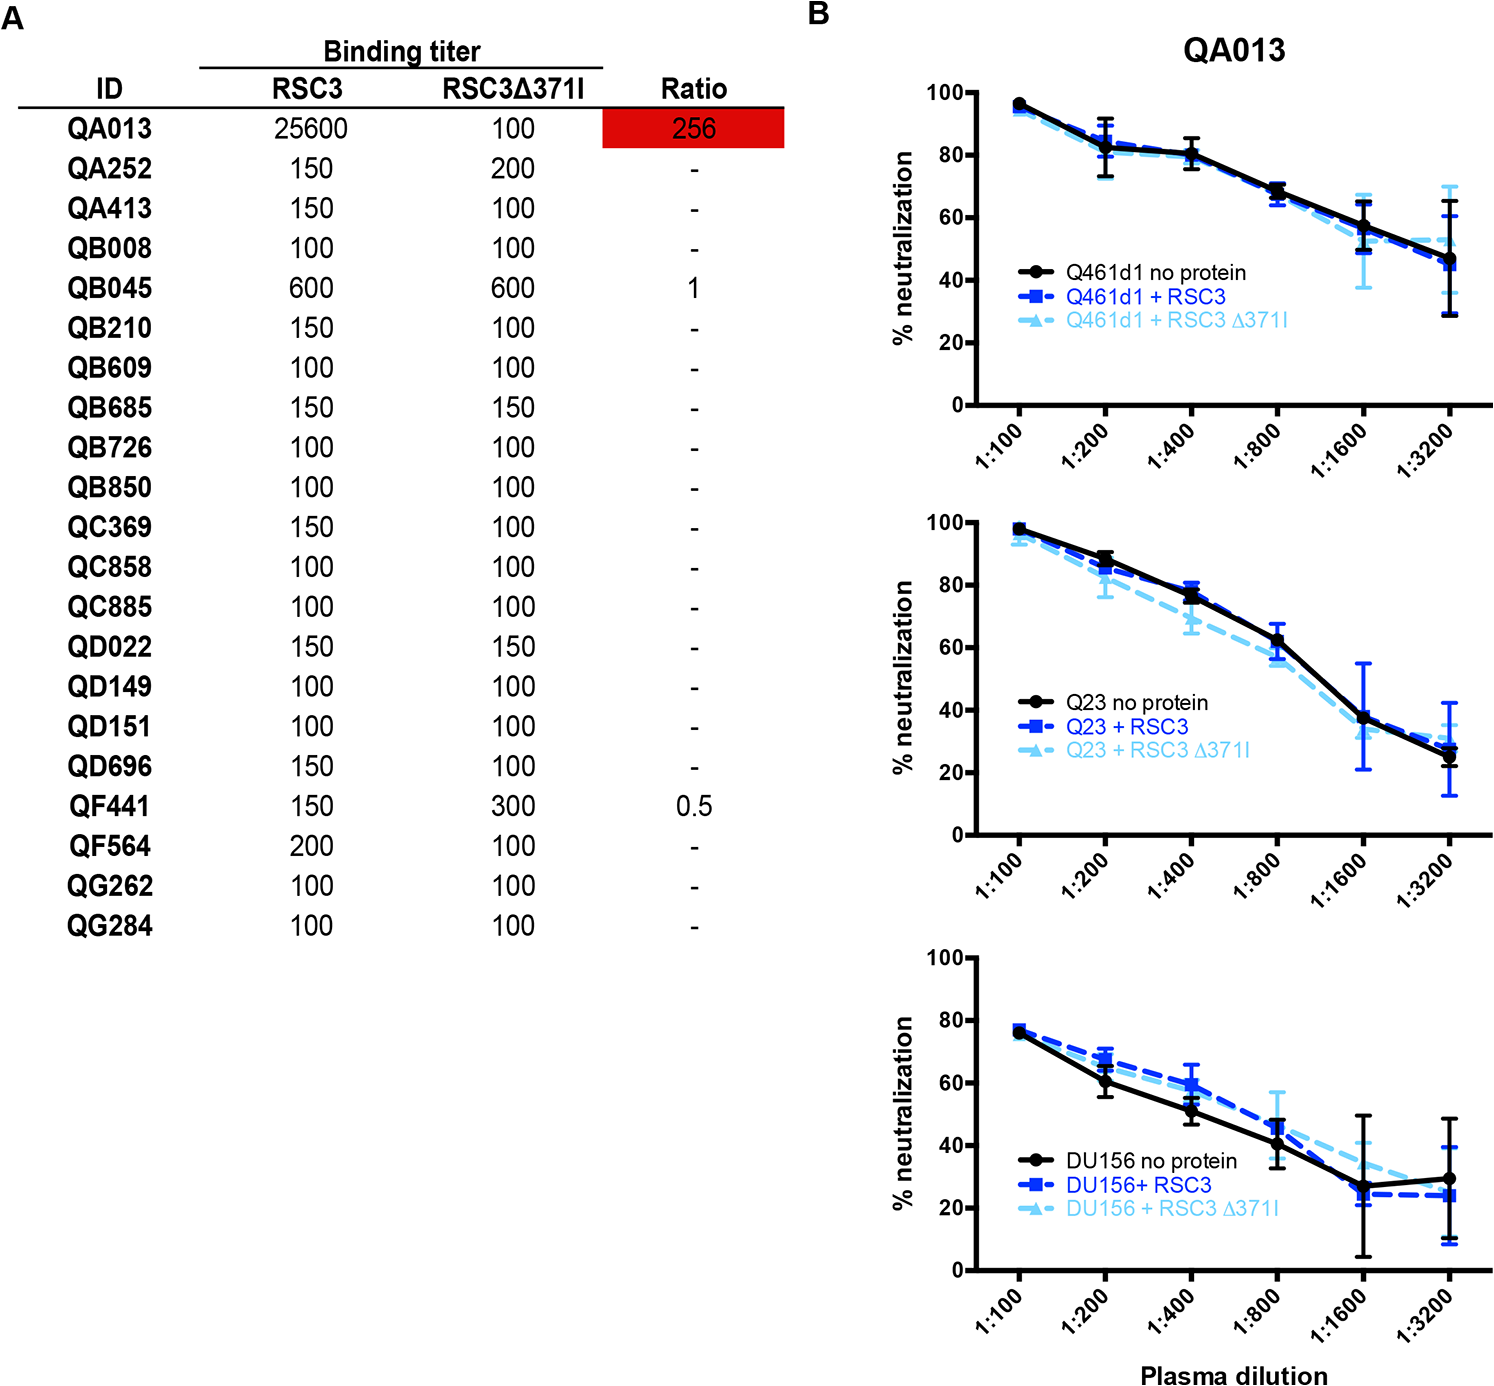 Differential binding of RSC3 and RSC3Δ371I proteins and their ability to compete for CD4-binding site-specific antibodies in a neutralization assay.